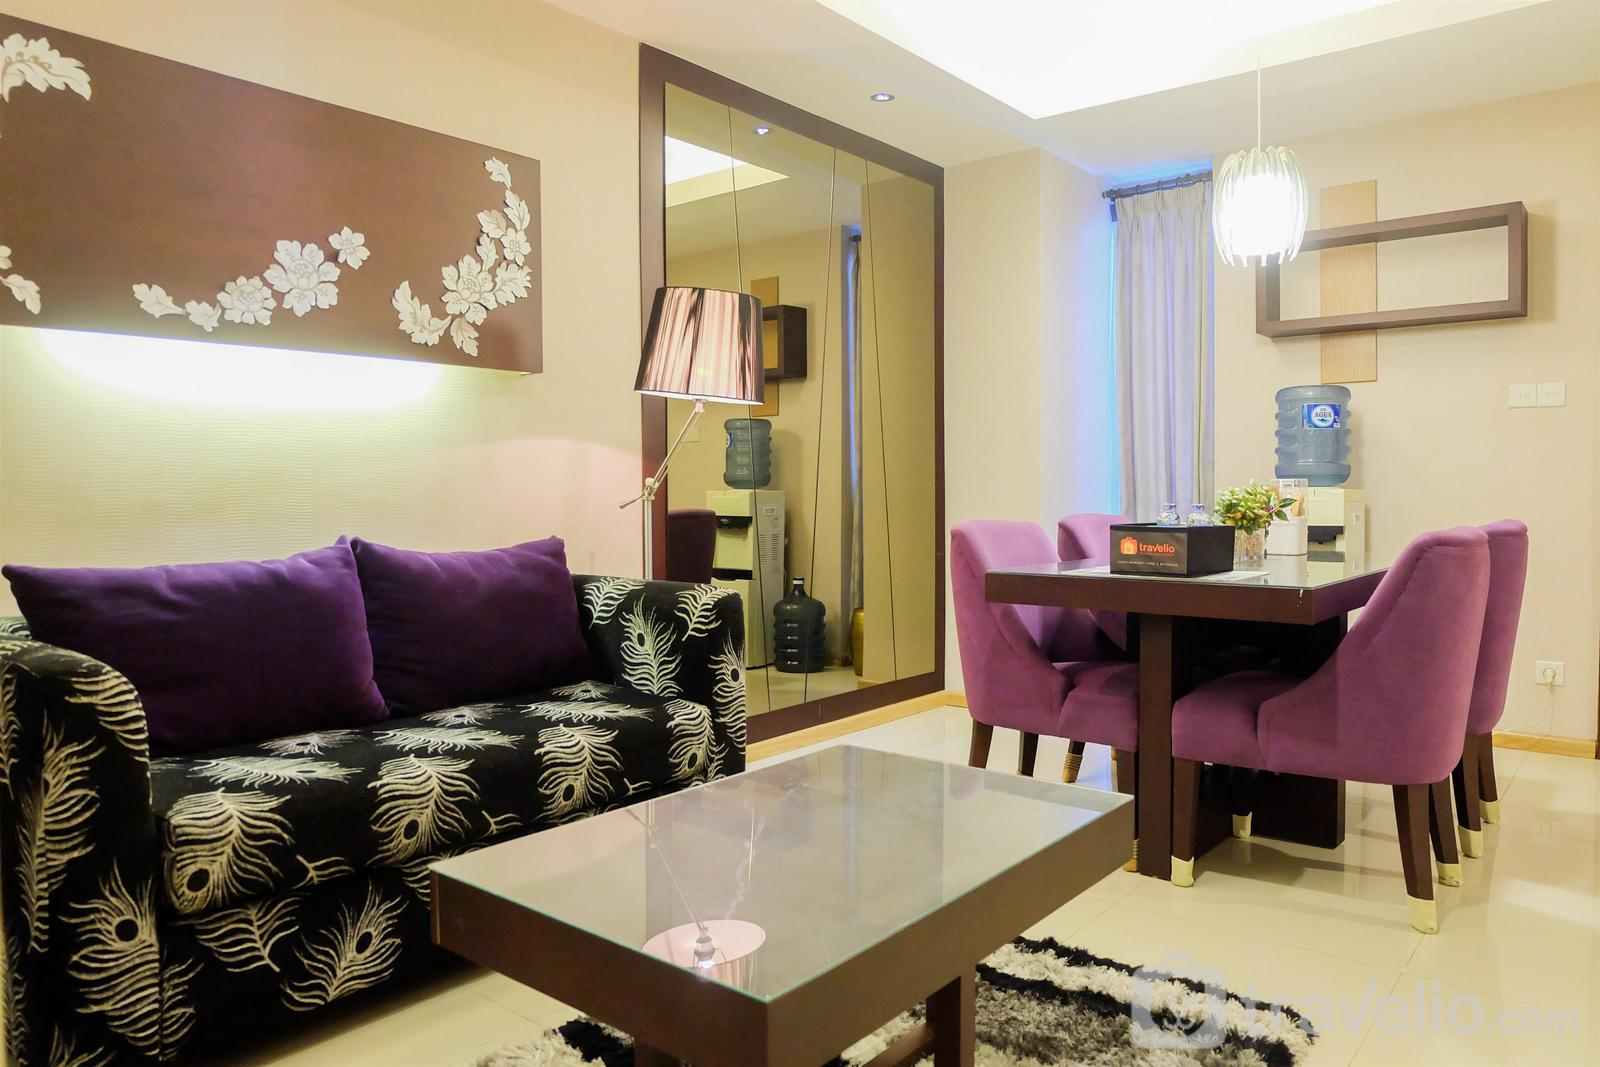 Casa Grande Residence - Best Value 1BR Apartment @ Casa Grande Residence By Travelio